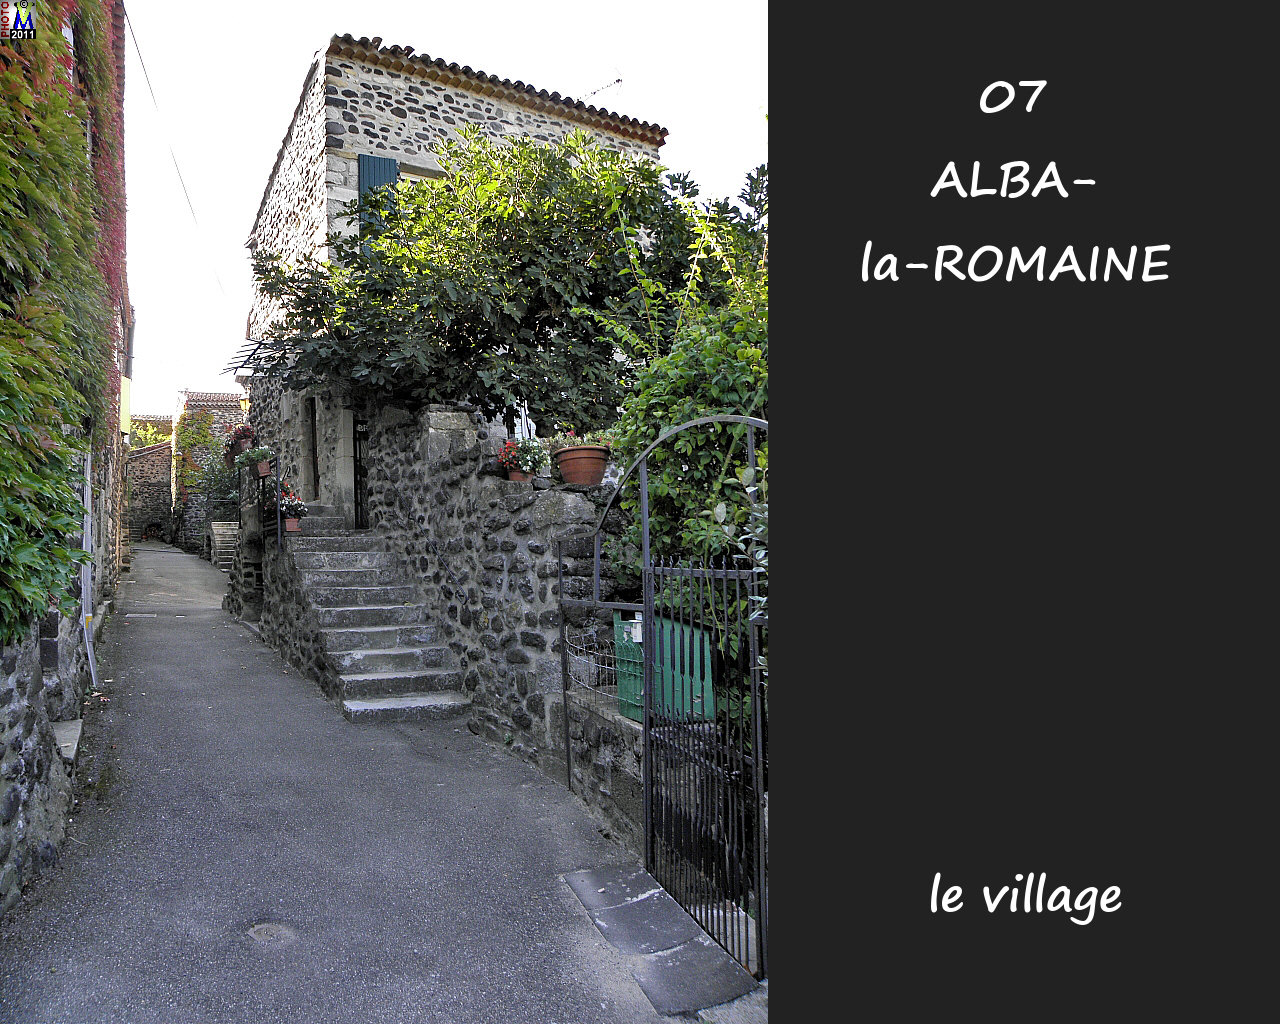 07ALBA-ROMAINE_village_134.jpg